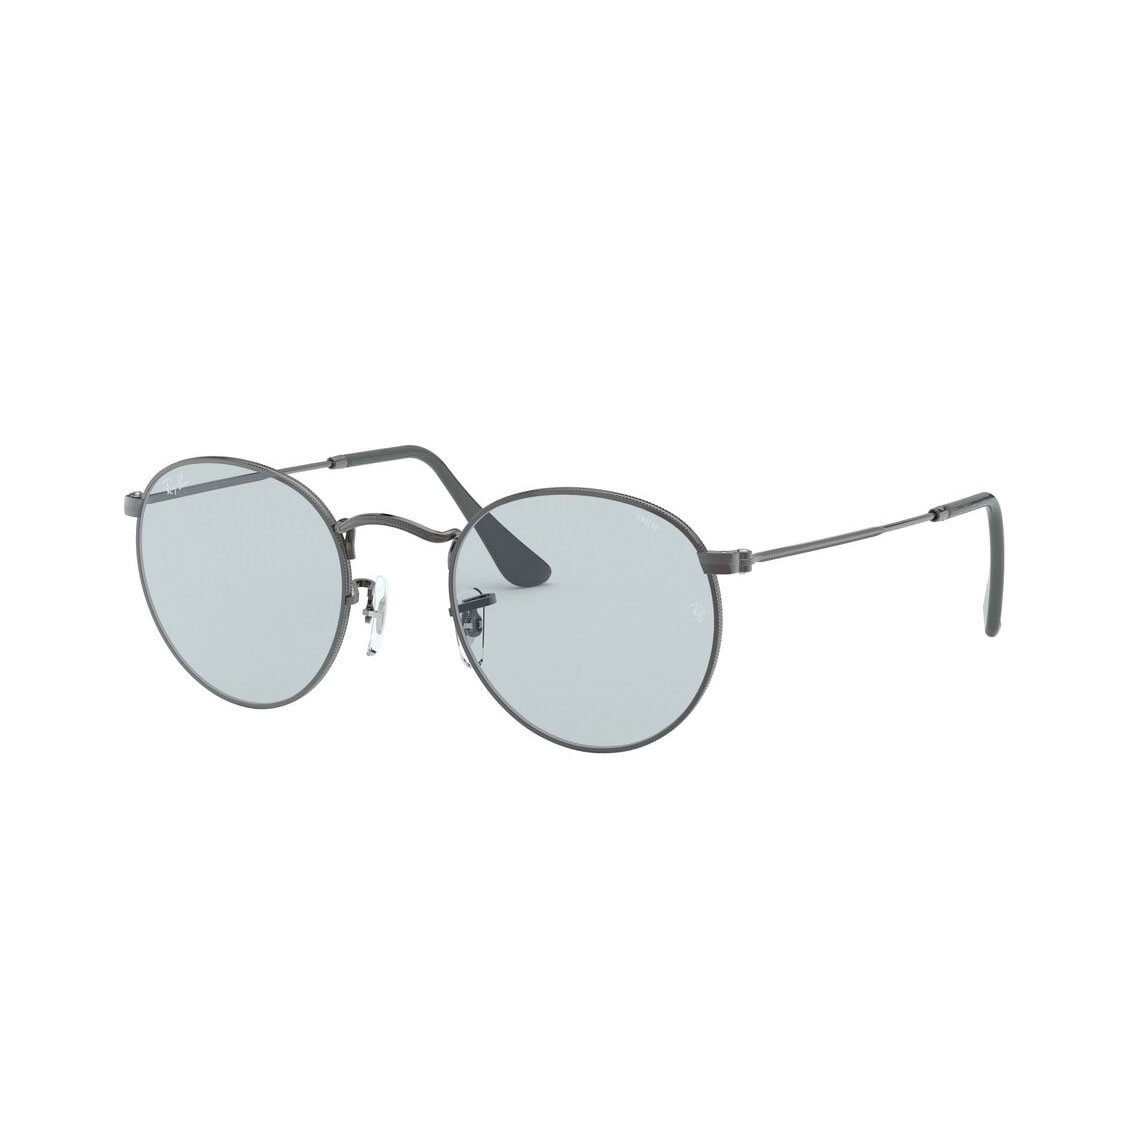 Ray-Ban Round metal RB3447 Solid Evolve 004/T3 5021